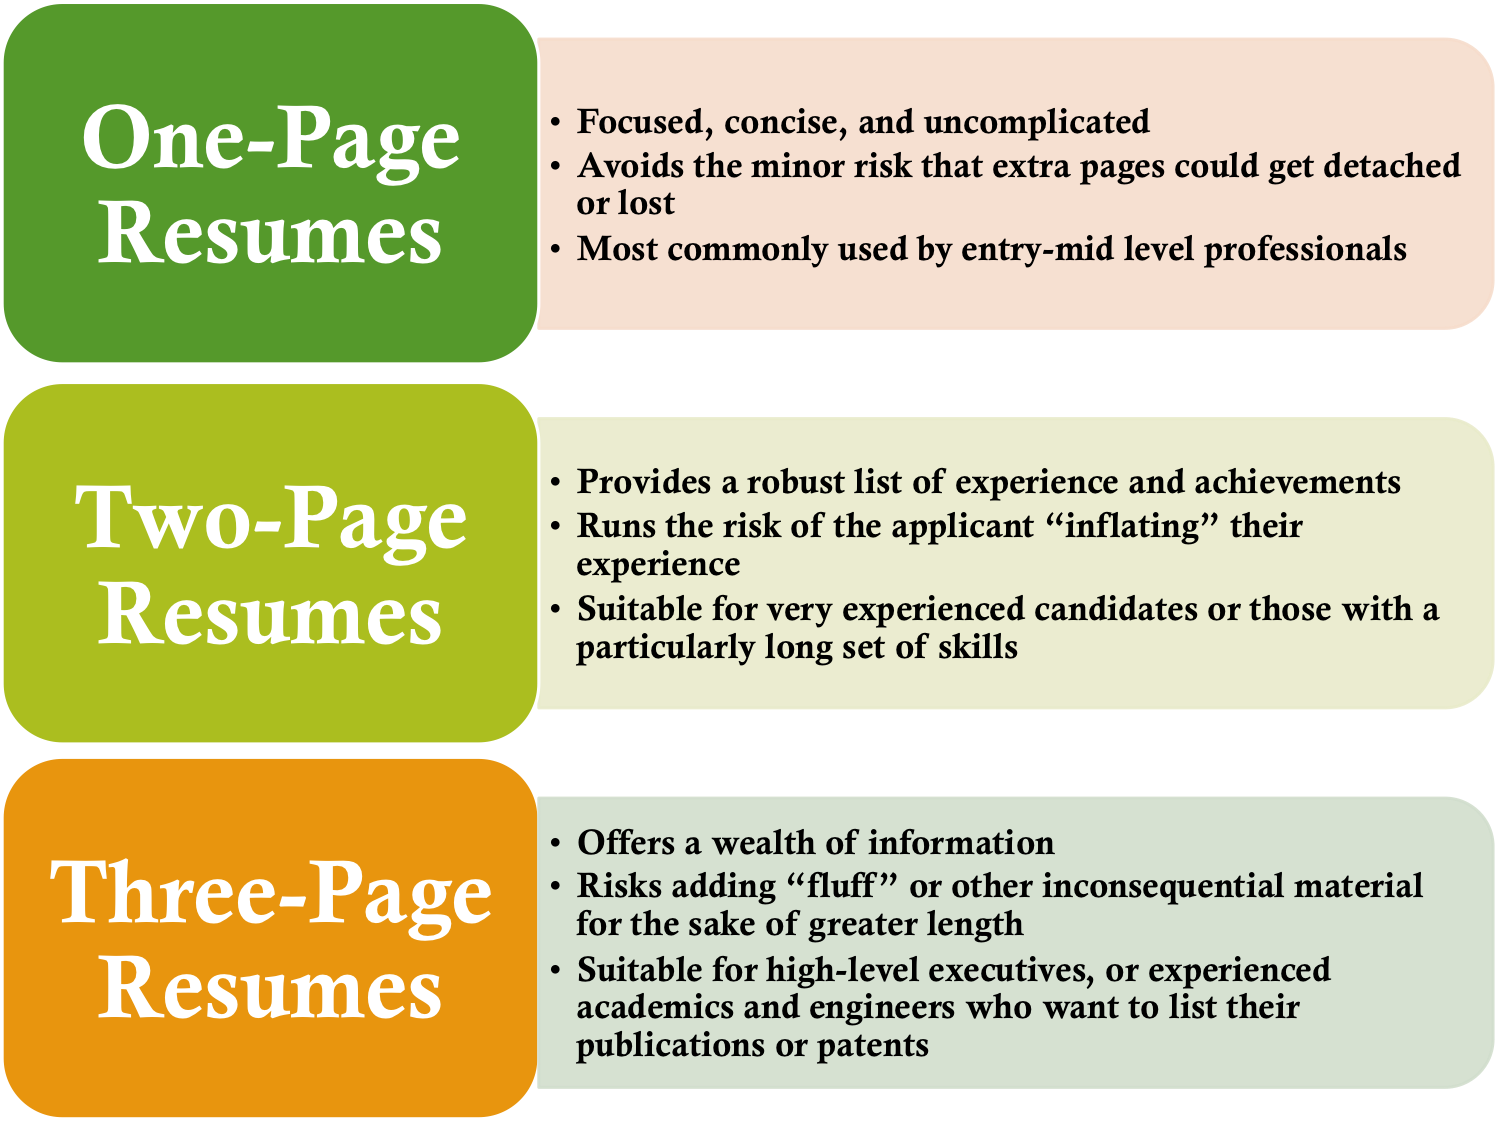 Resume Can Resumes Be Two Pages resume aesthetics font margins and paper guidelines genius ideal length